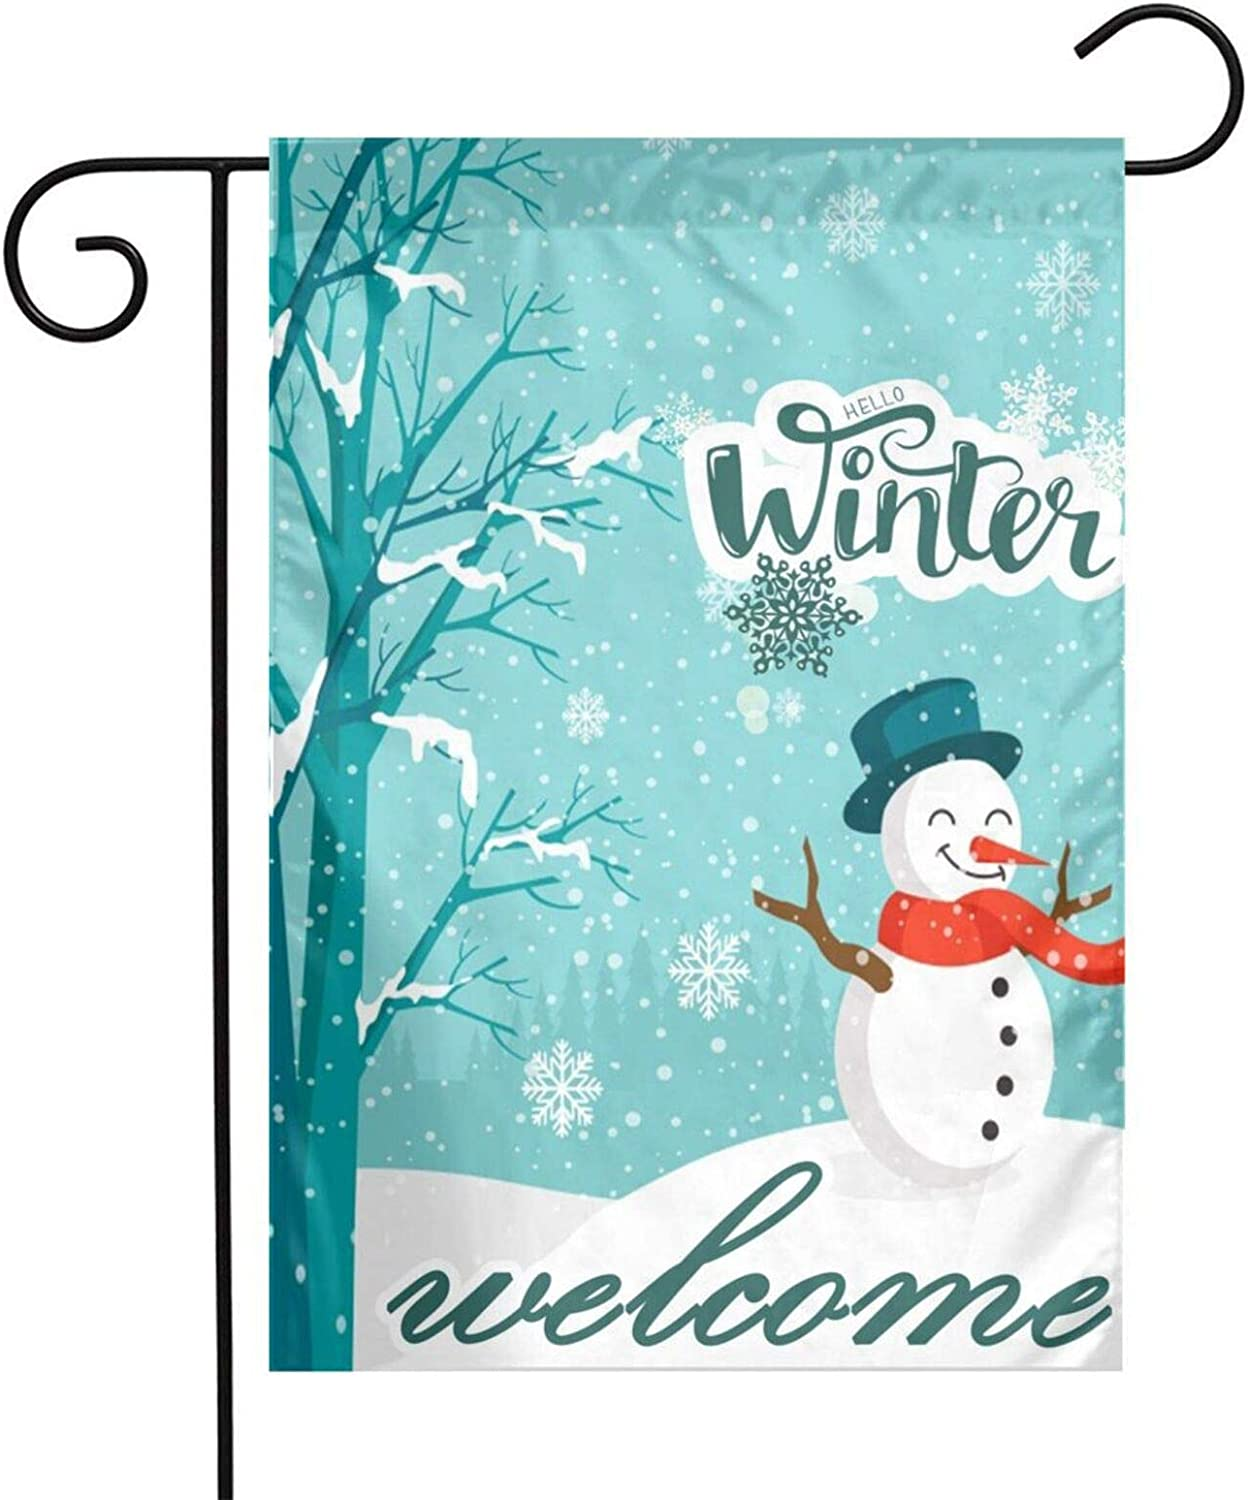 Christmas Snowman Welcome Winter Garden Flag 12'x18' Double Sided Hello Winter Snowy Snowflakes Yard Banner Winter Seasonal House Decoration Indoor & Outdoor